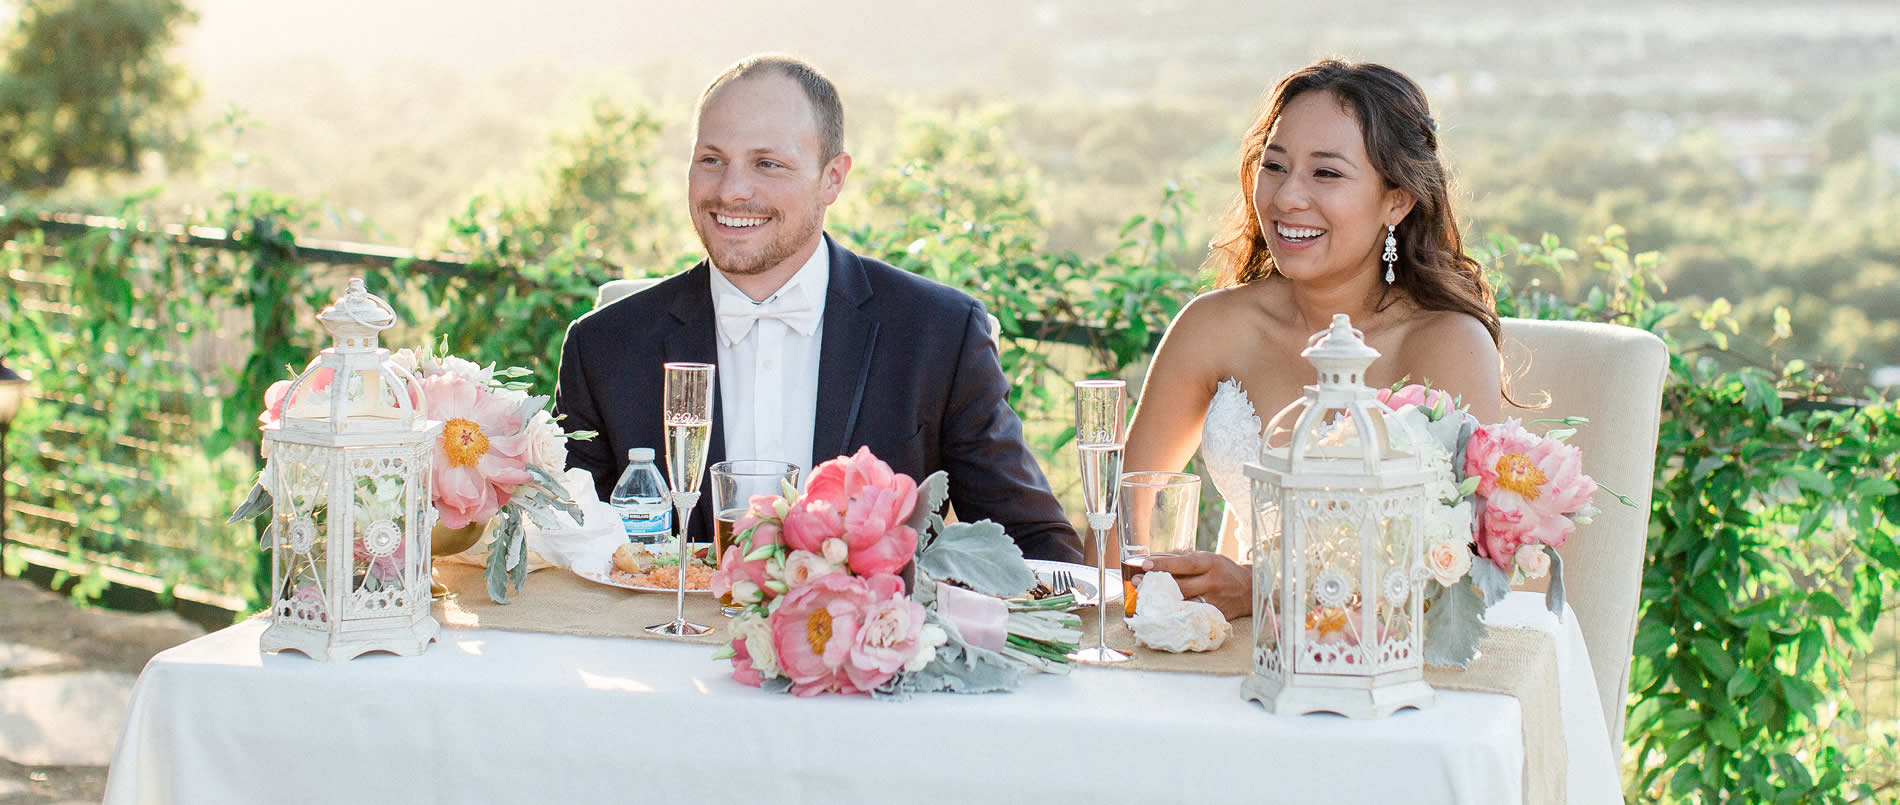 ojai retreat weddings and receptions ojai valley ca